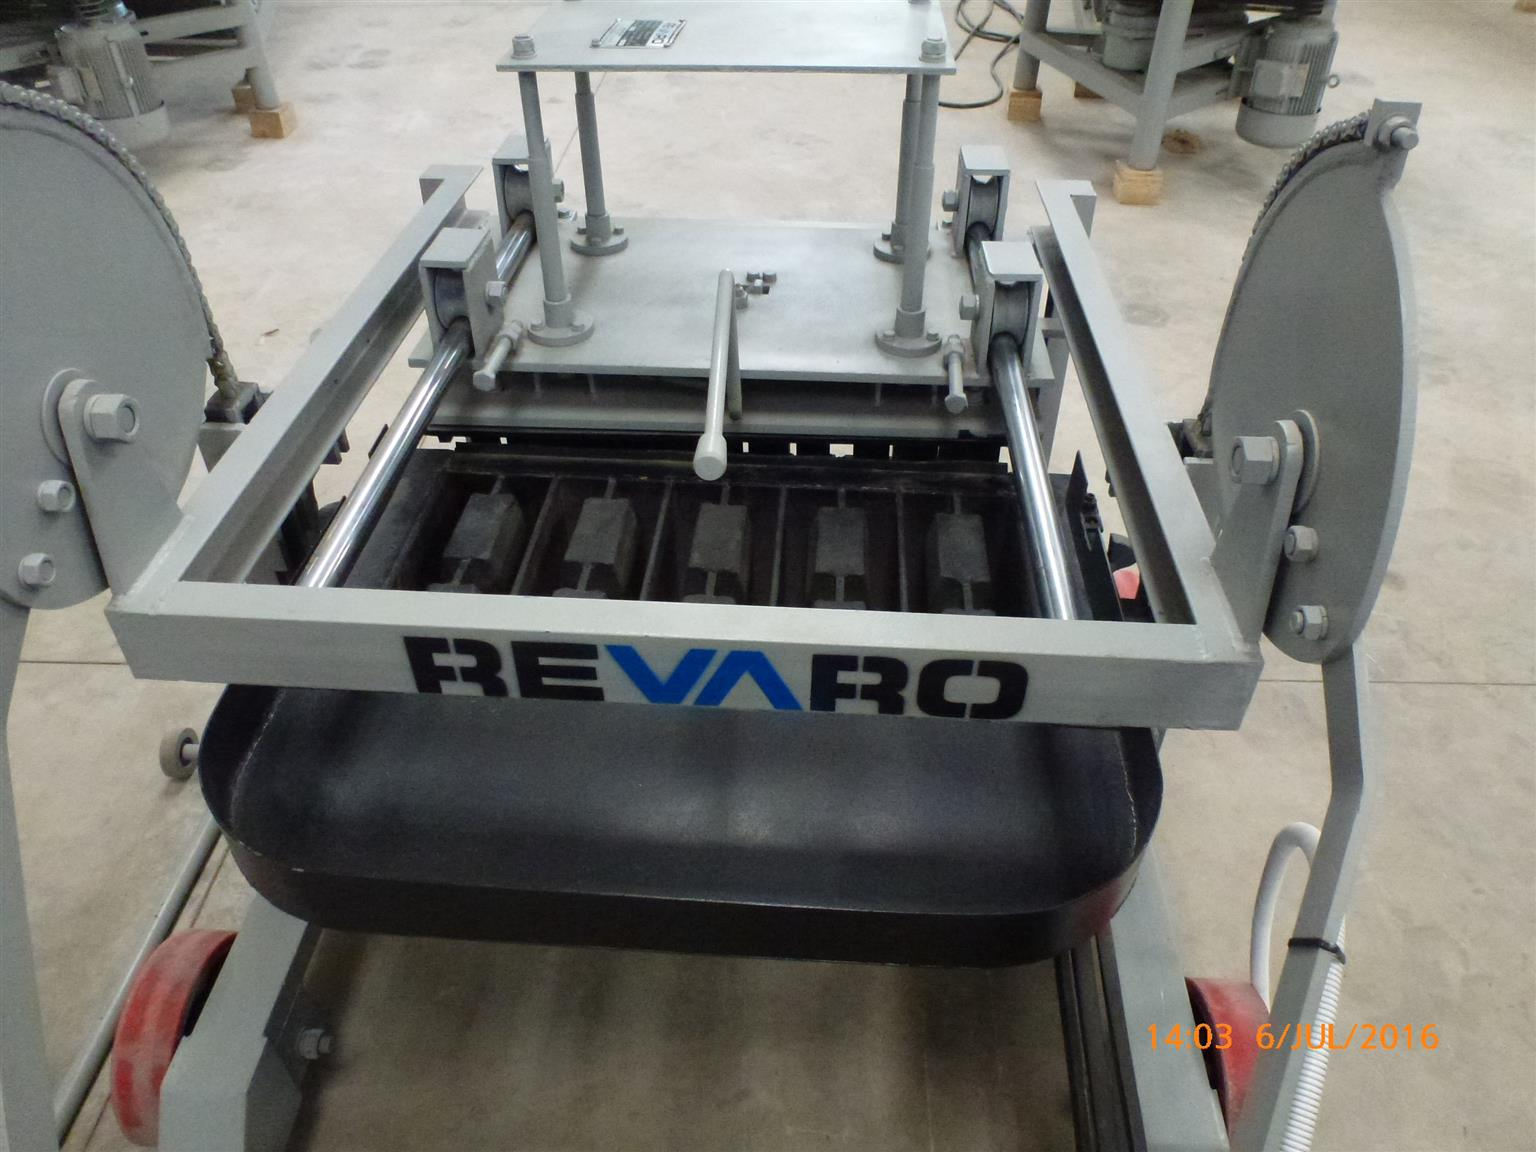 Revaro Egg Layers with inter changeable moulds Affordable big profits